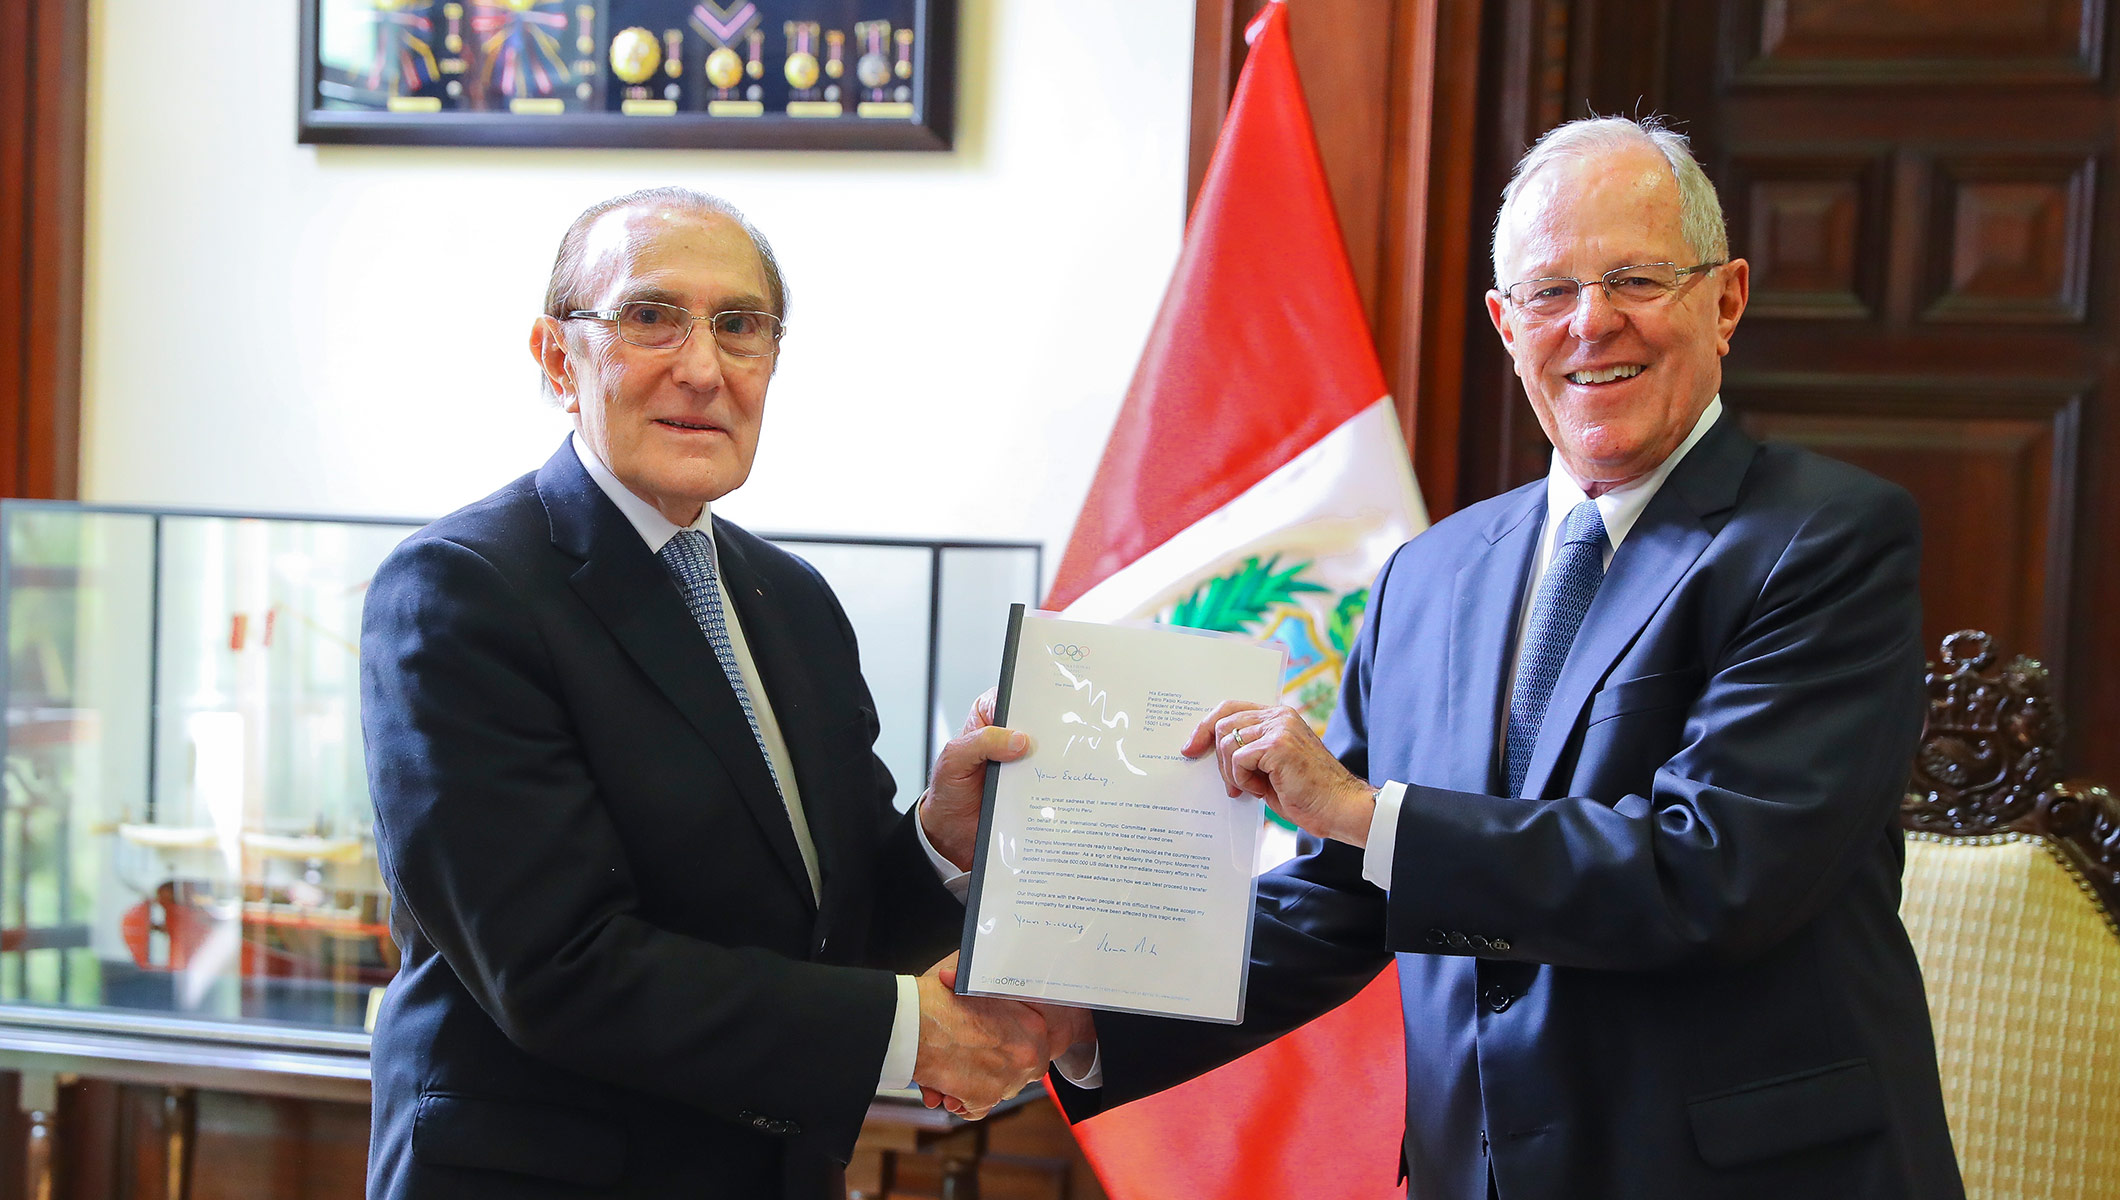 THE INTERNATIONAL OLYMPIC COMMITTEE (IOC) TODAY ANNOUNCED A DONATION OF USD 600,000 TO SUPPORT THE IMMEDIATE RECOVERY EFFORTS IN PERU, FOLLOWING THE DEVASTATING FLOODS IN LARGE PARTS OF THE COUNTRY.  In a letter to the President of Peru, Pedro Pablo Kuczynski, IOC President Thomas Bach expressed his sympathy for the Peruvian people at this difficult time. The letter was handed over personally to President Kuczynski today by the IOC Member in Peru, Iván Dibós.